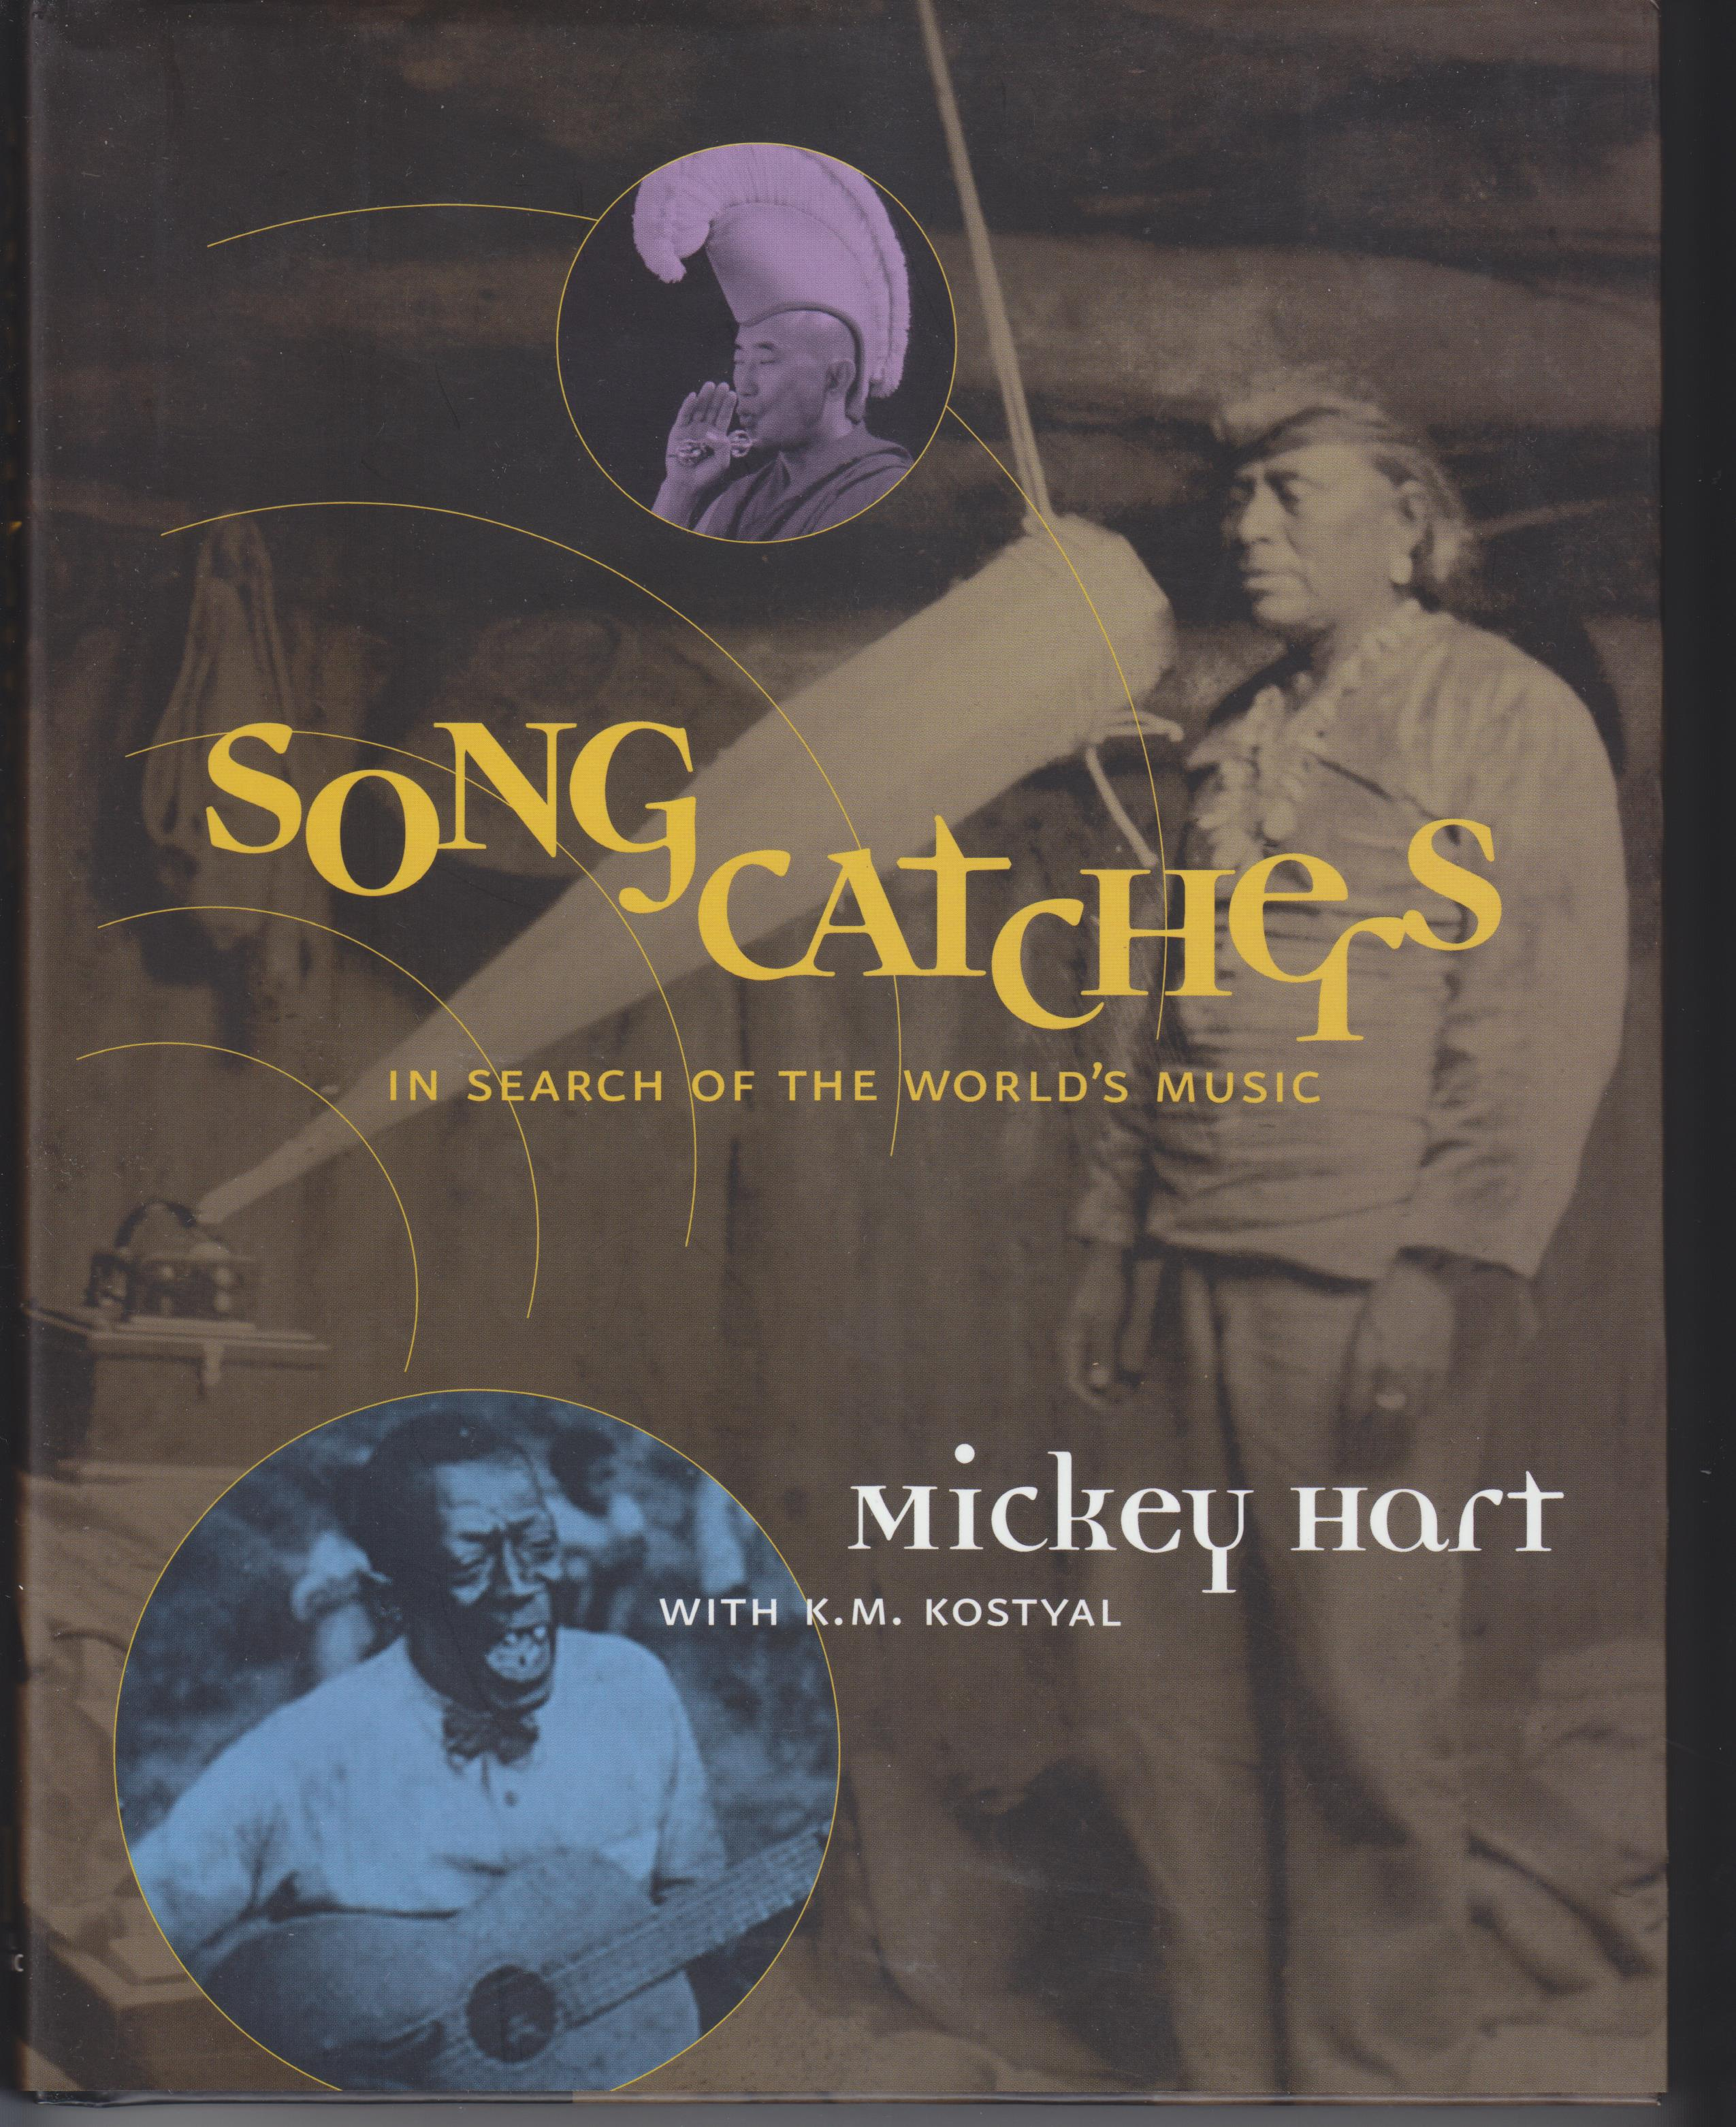 Image for Songcatchers In Search of the World's Music